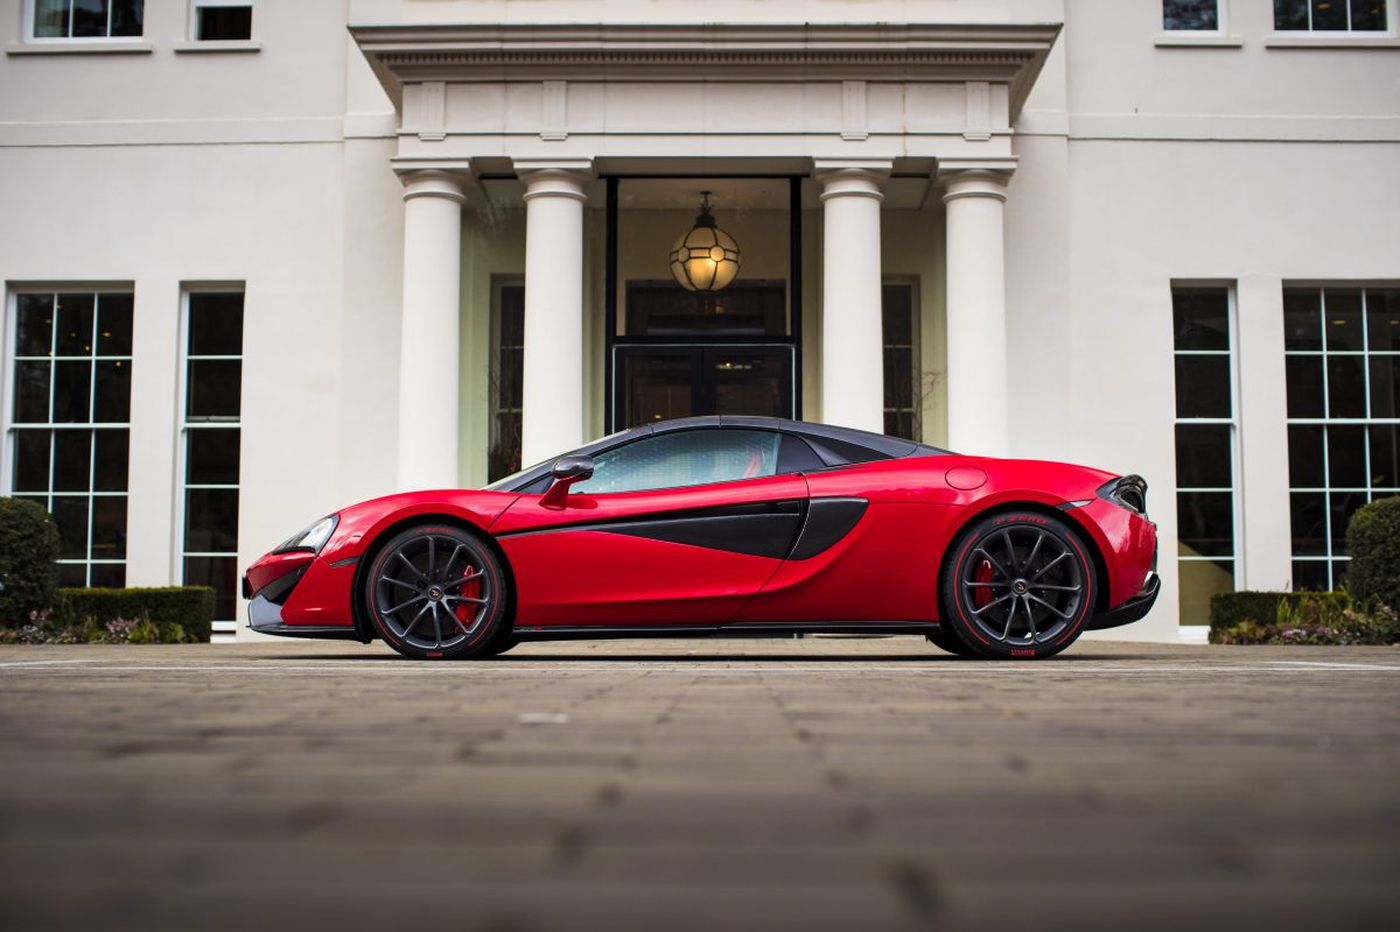 McLaren 570S Spider: Knock-your-glasses-off fun - plus room for luggage